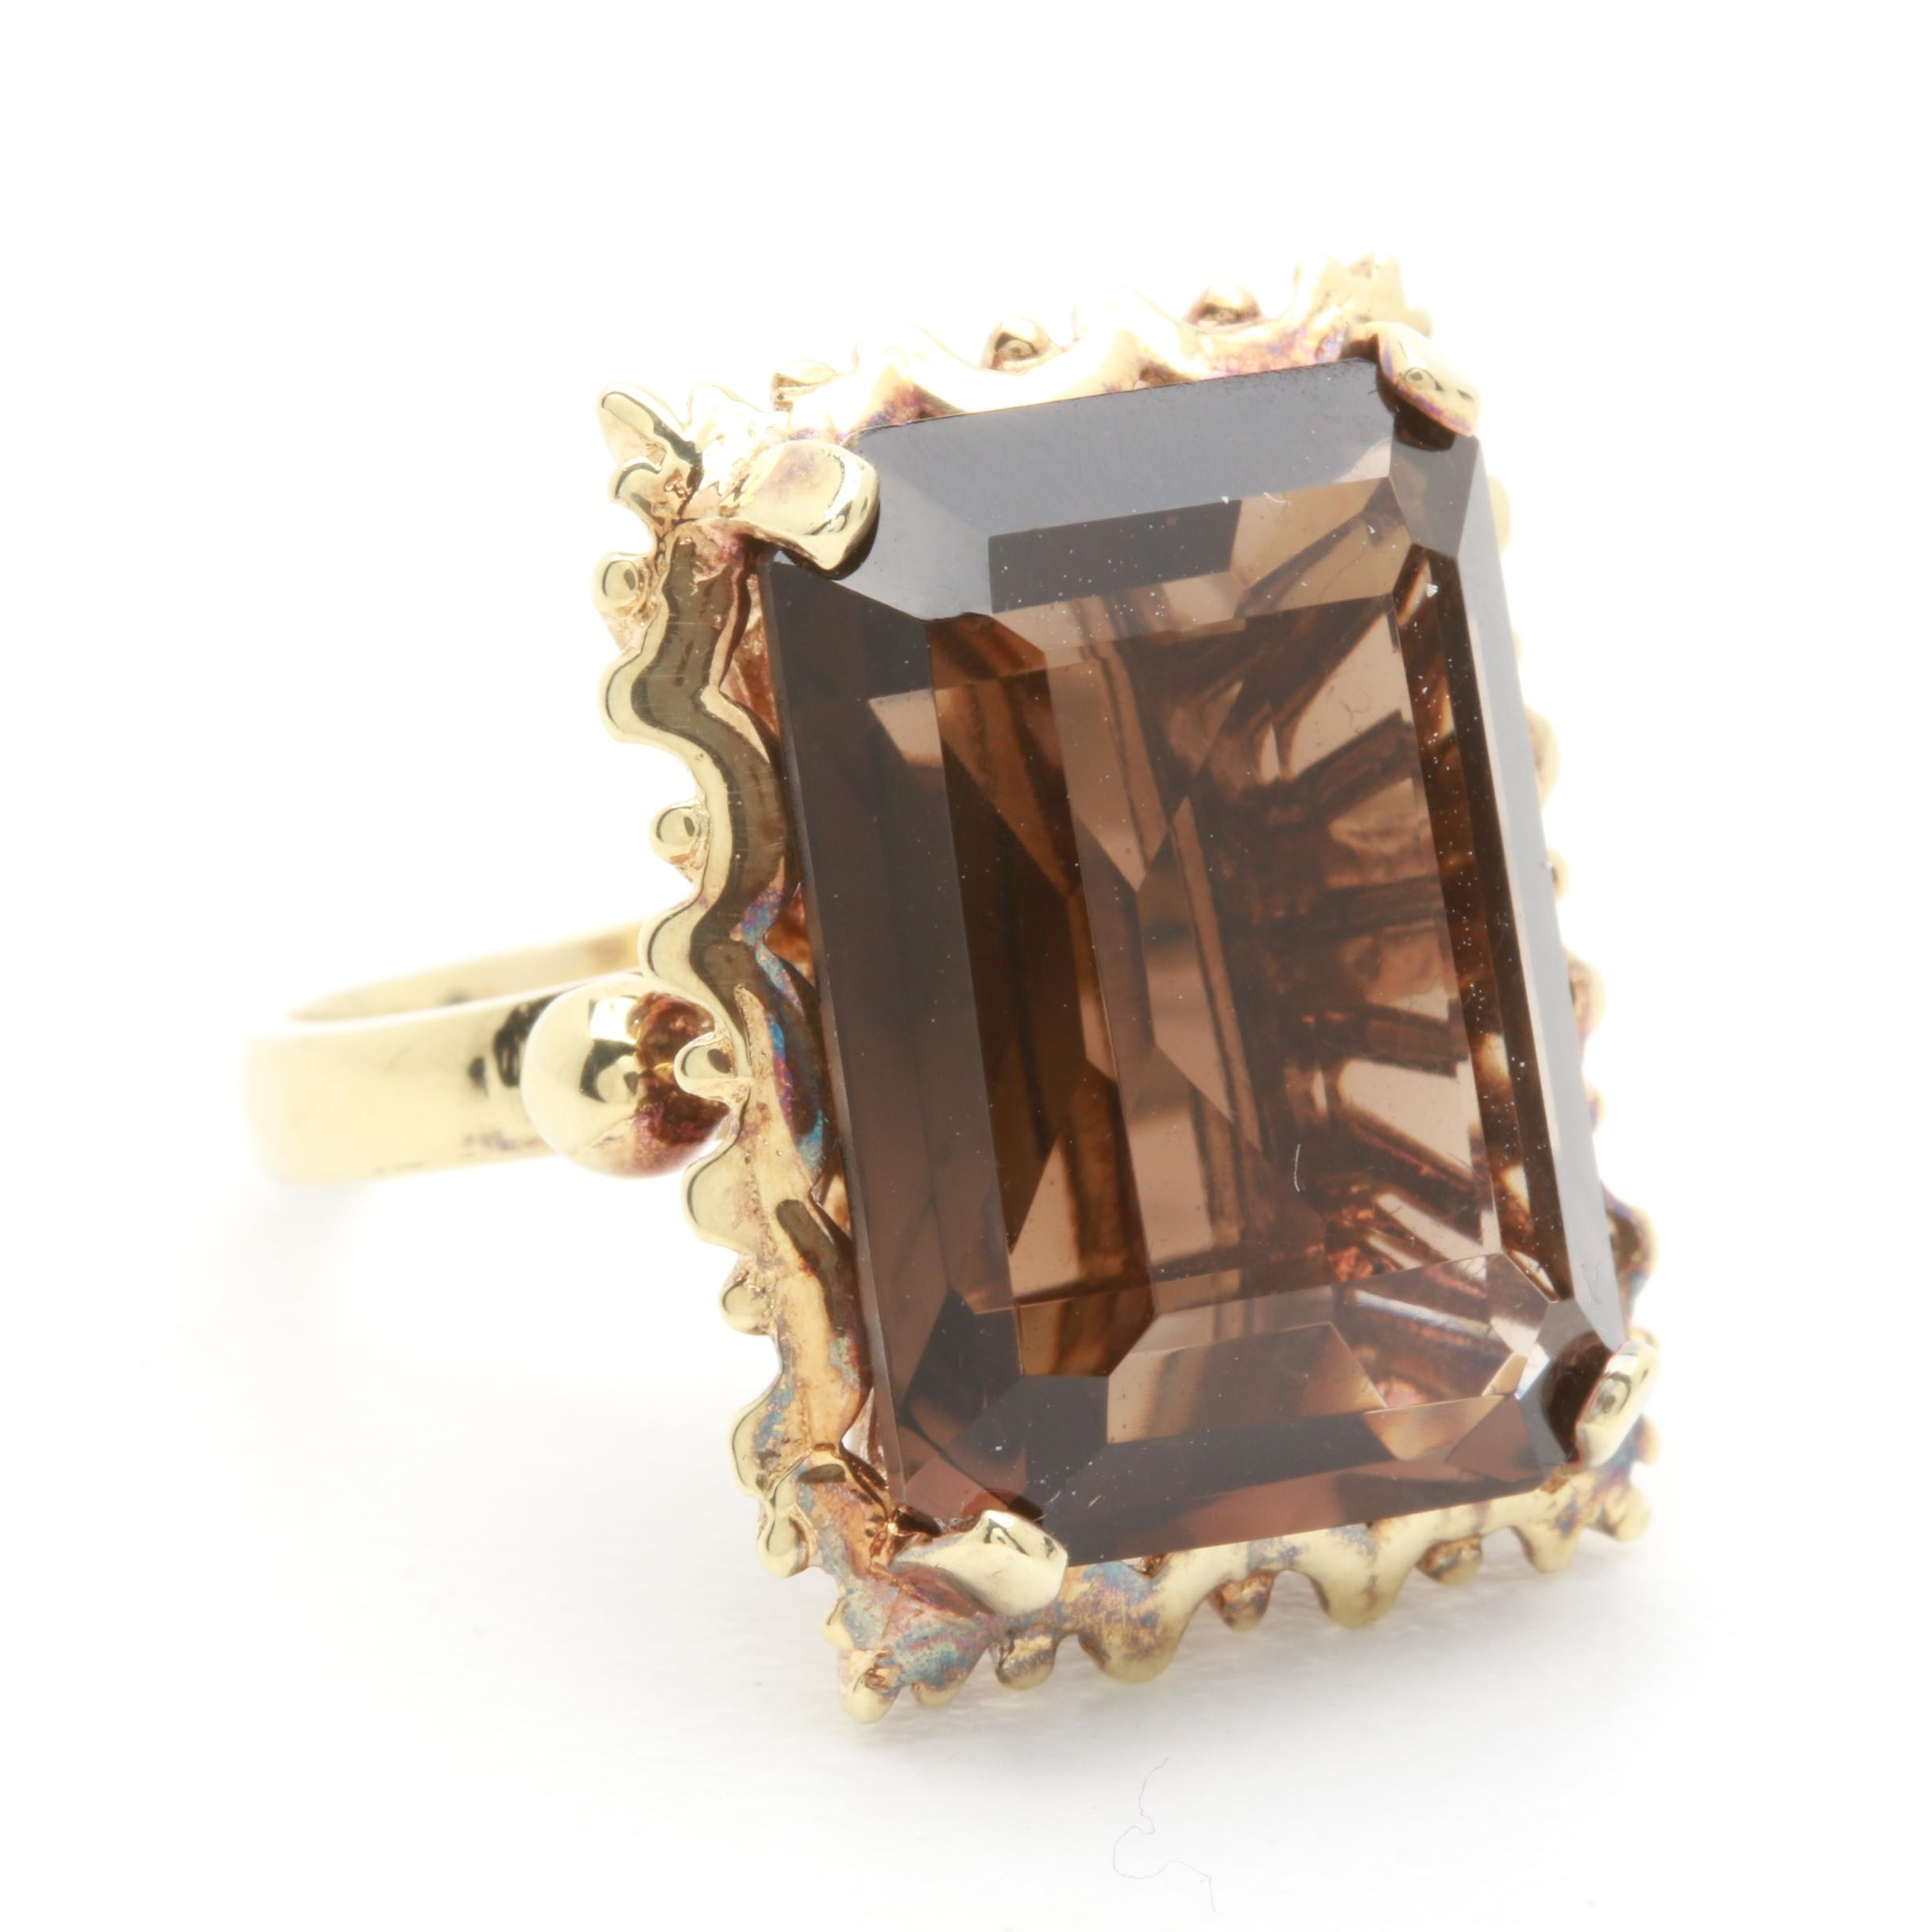 Circa 1950s 14K Yellow Gold 11.36 CT Smoky Quartz Ring